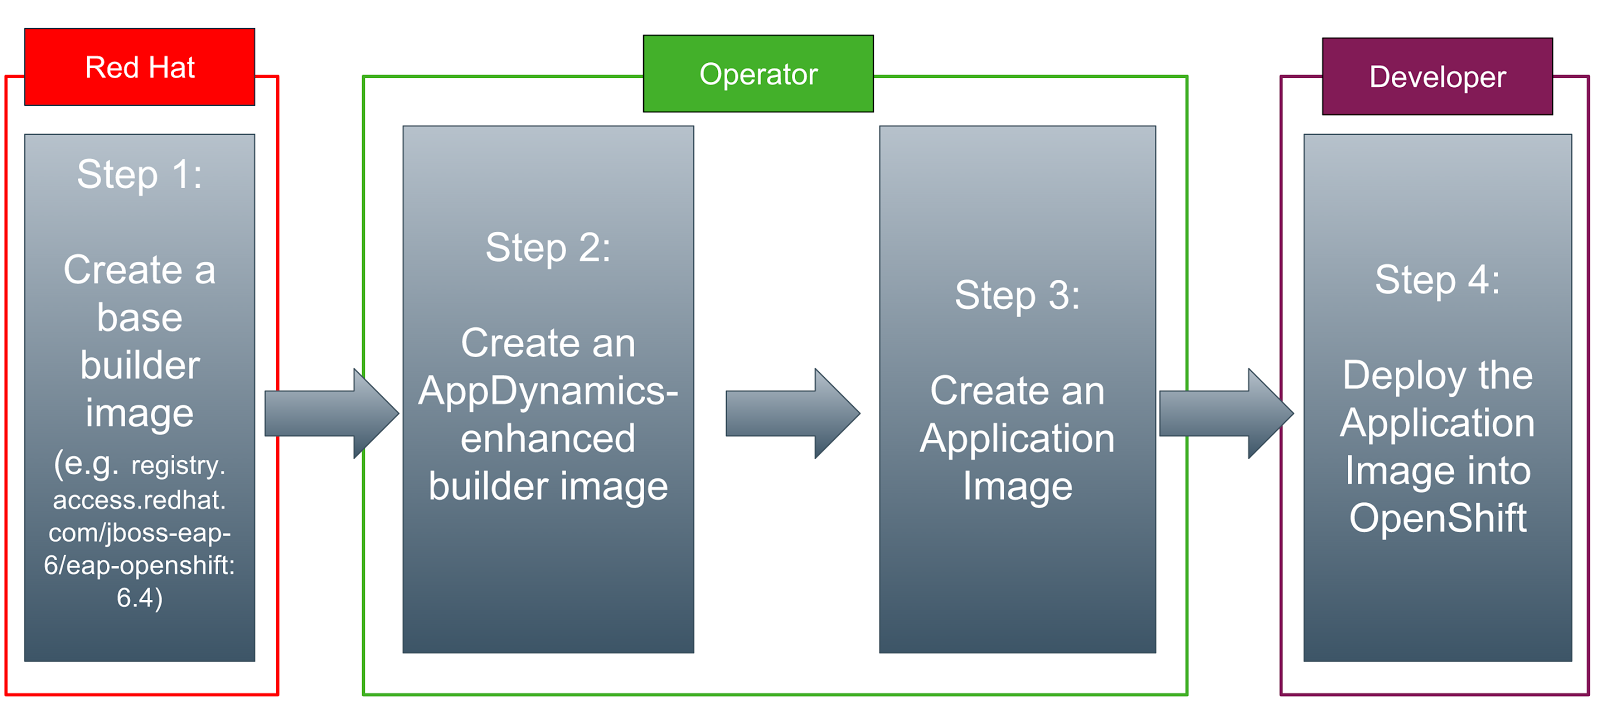 openshift Archives | Application Performance Monitoring Blog